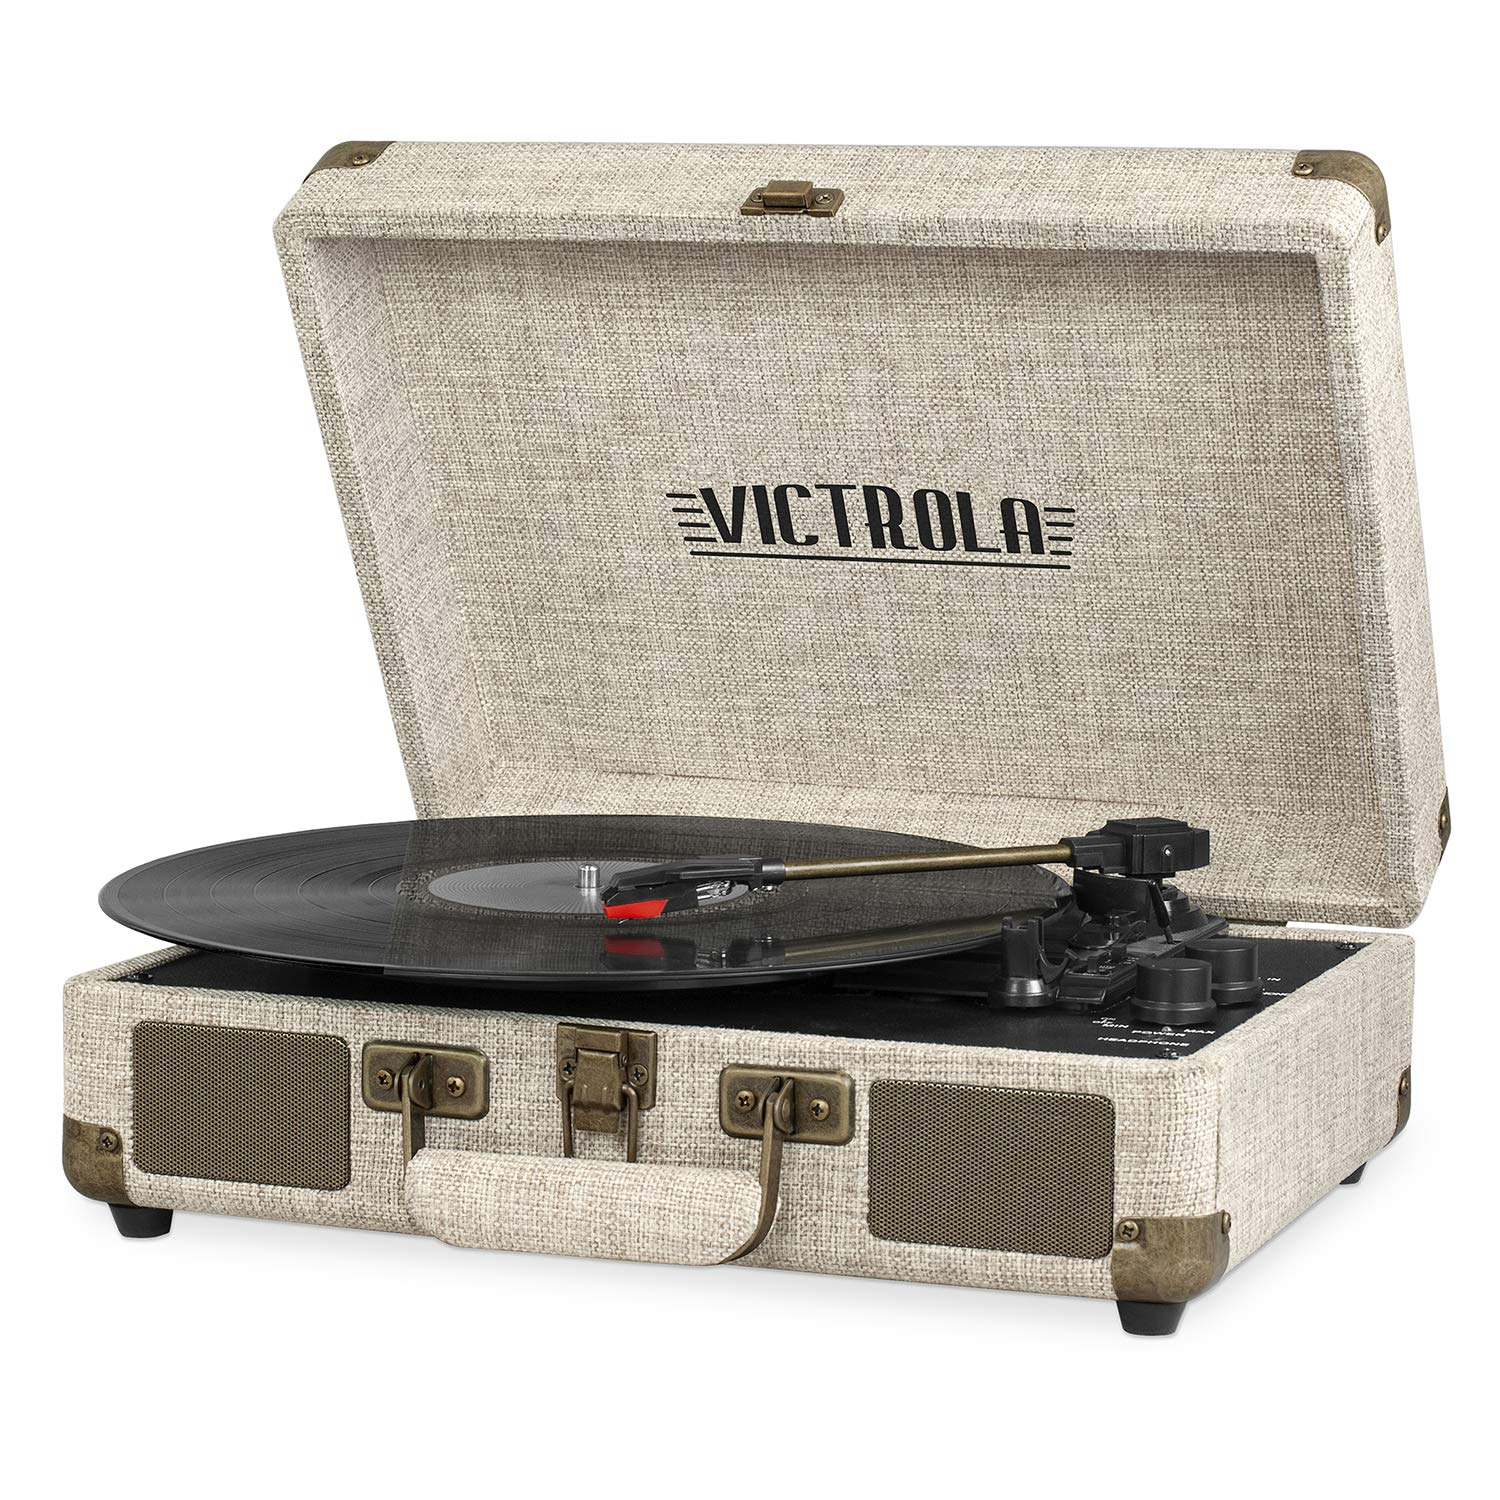 Victrola Bluetooth Suitcase Record Player with 3-Speed Turntable, Light Beige Linen